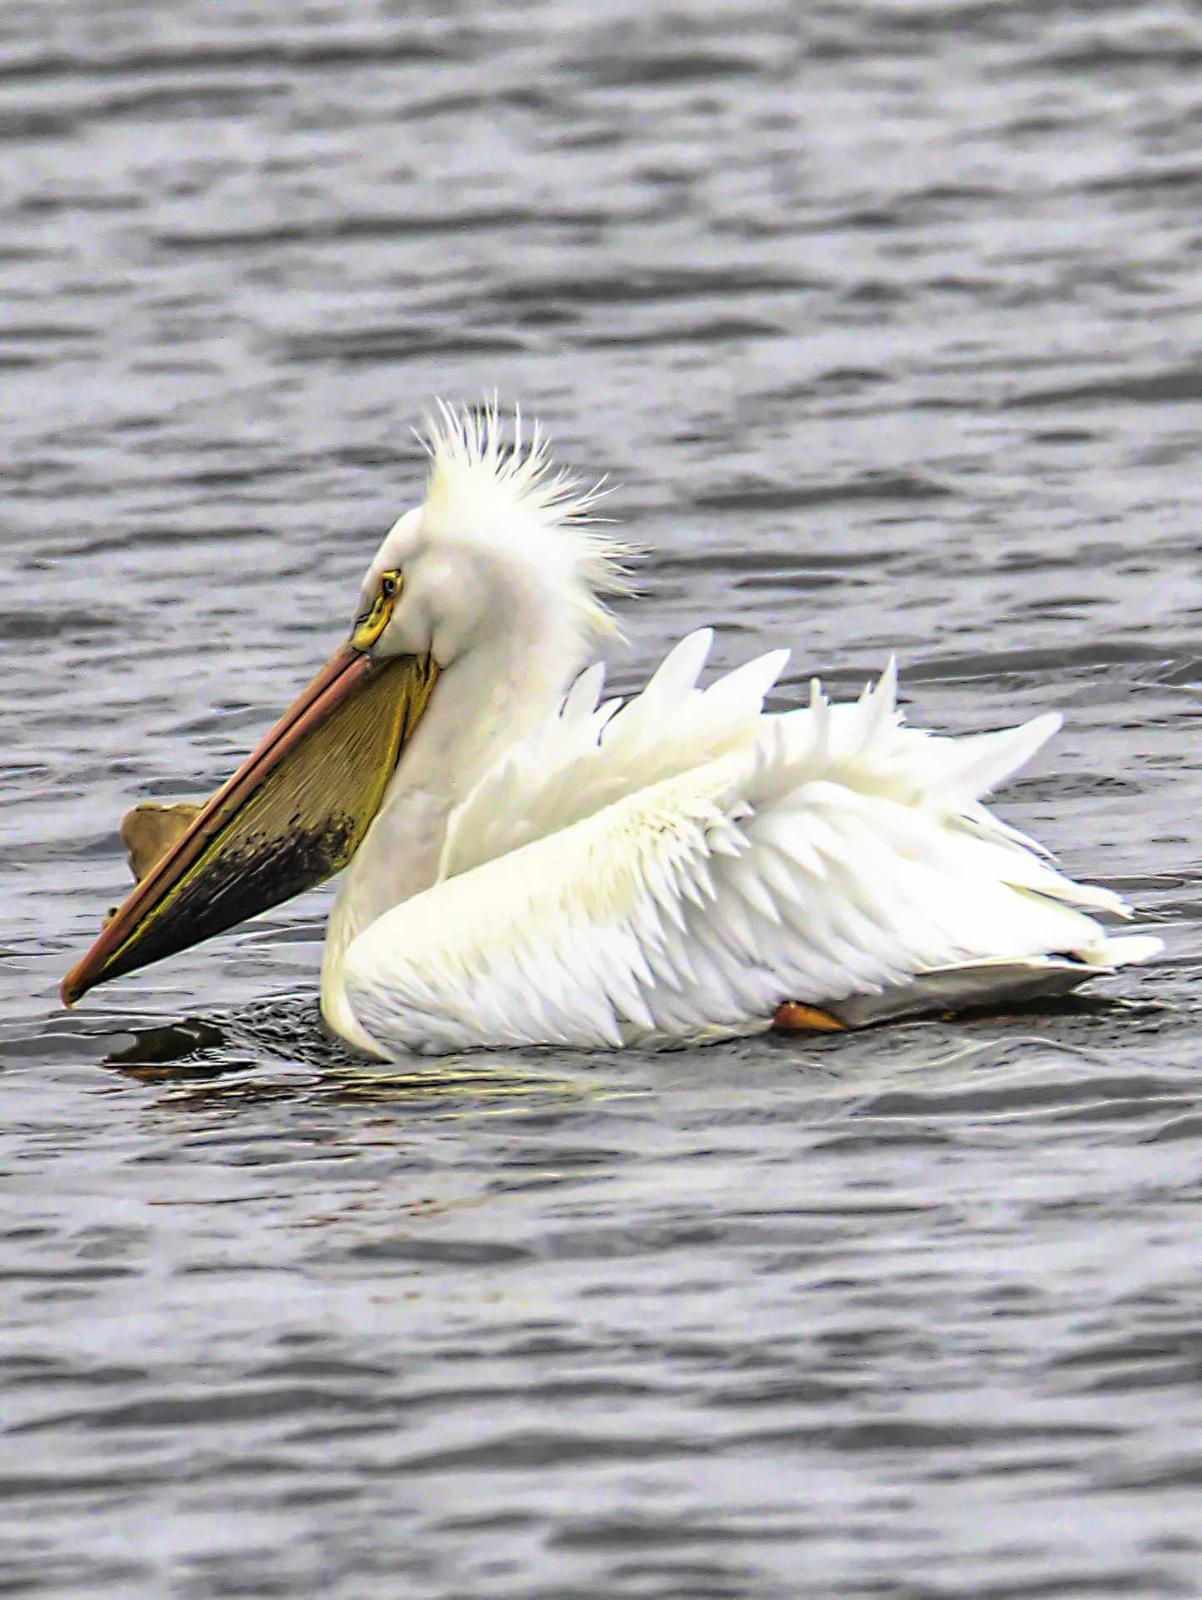 American White Pelican Photo by Dan Tallman